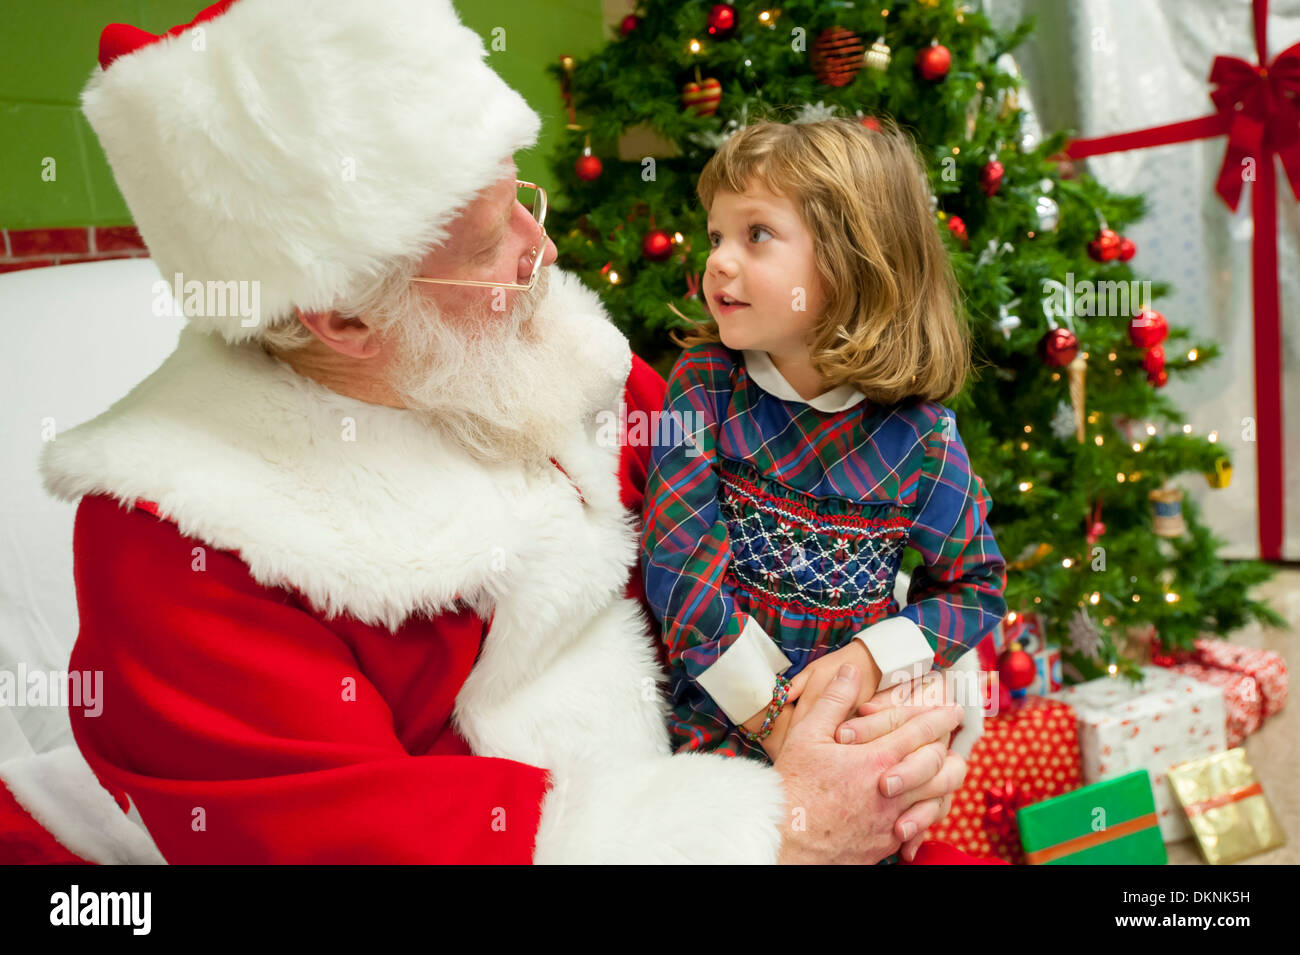 Santa Claus with a young girl  6 7 8 9 on his lap in a chair talking to him about what she wants for Christmas Stock Photo